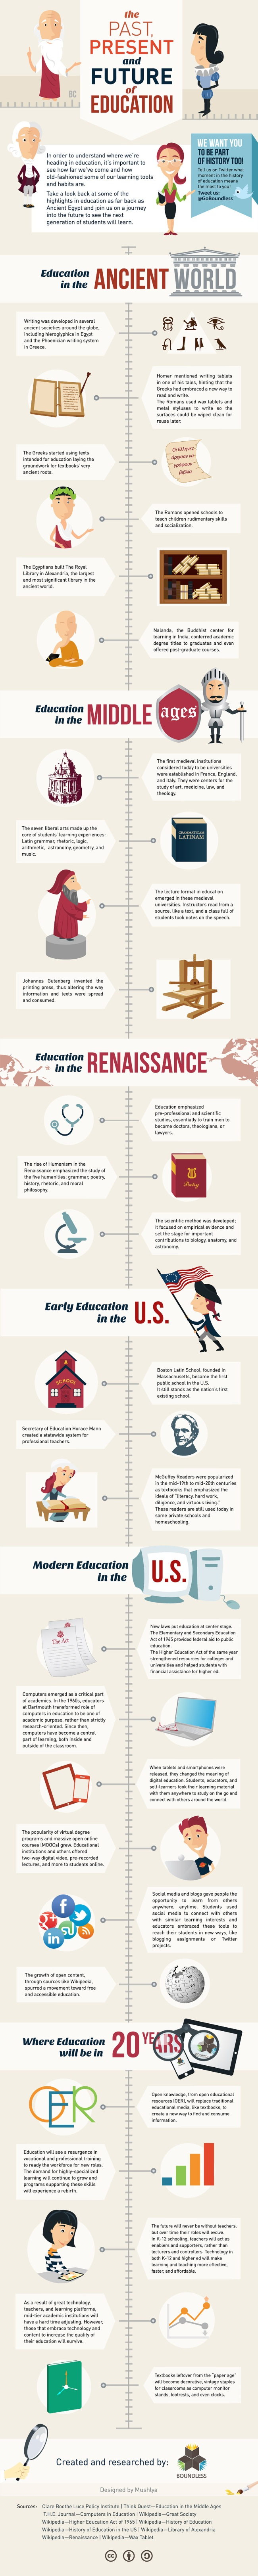 history_of_education_infographic.jpg?w=6